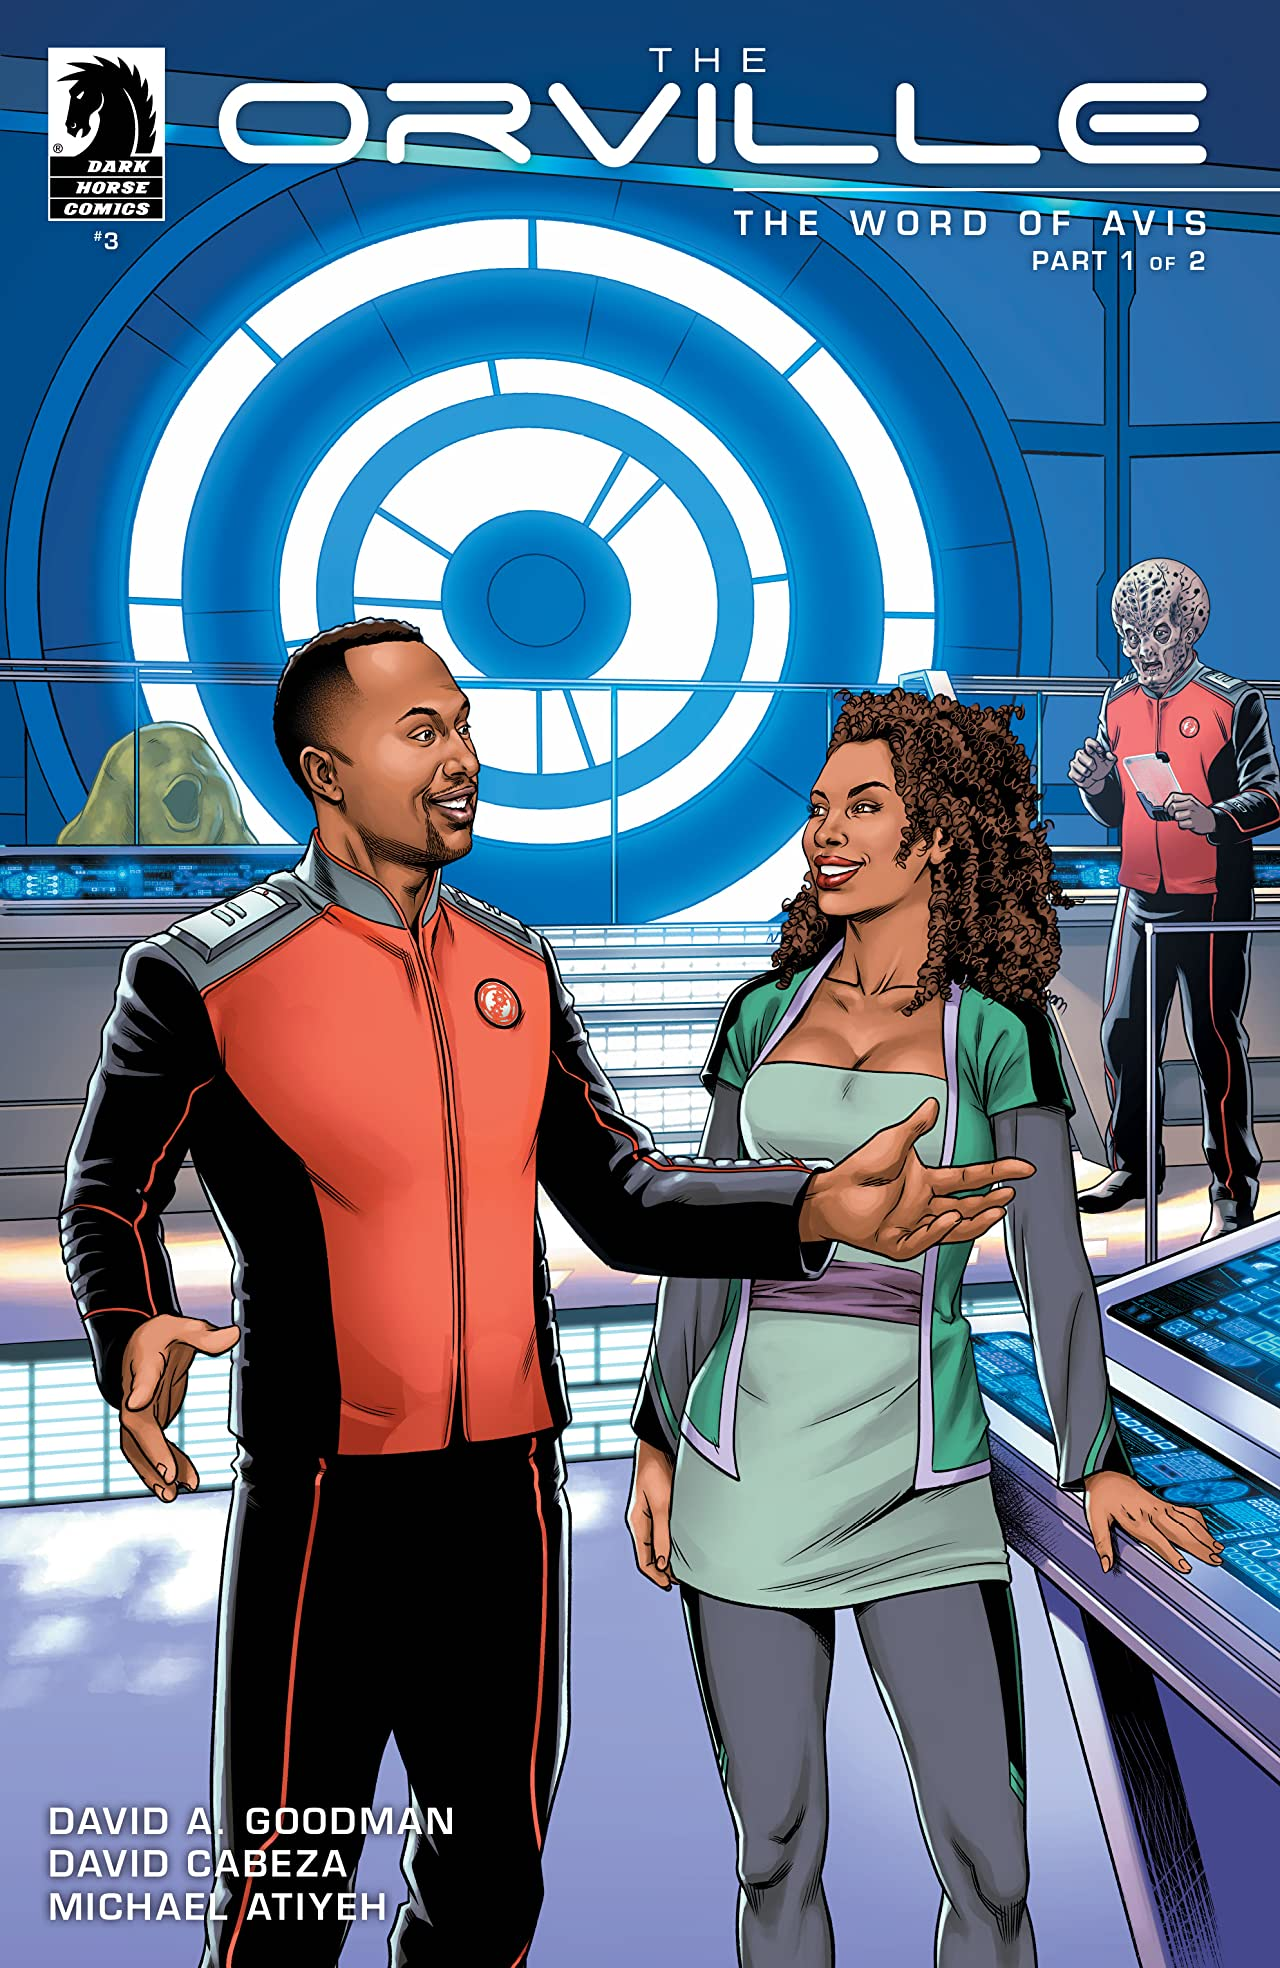 The Orville #3: The Word of Avis Part 1 of 2